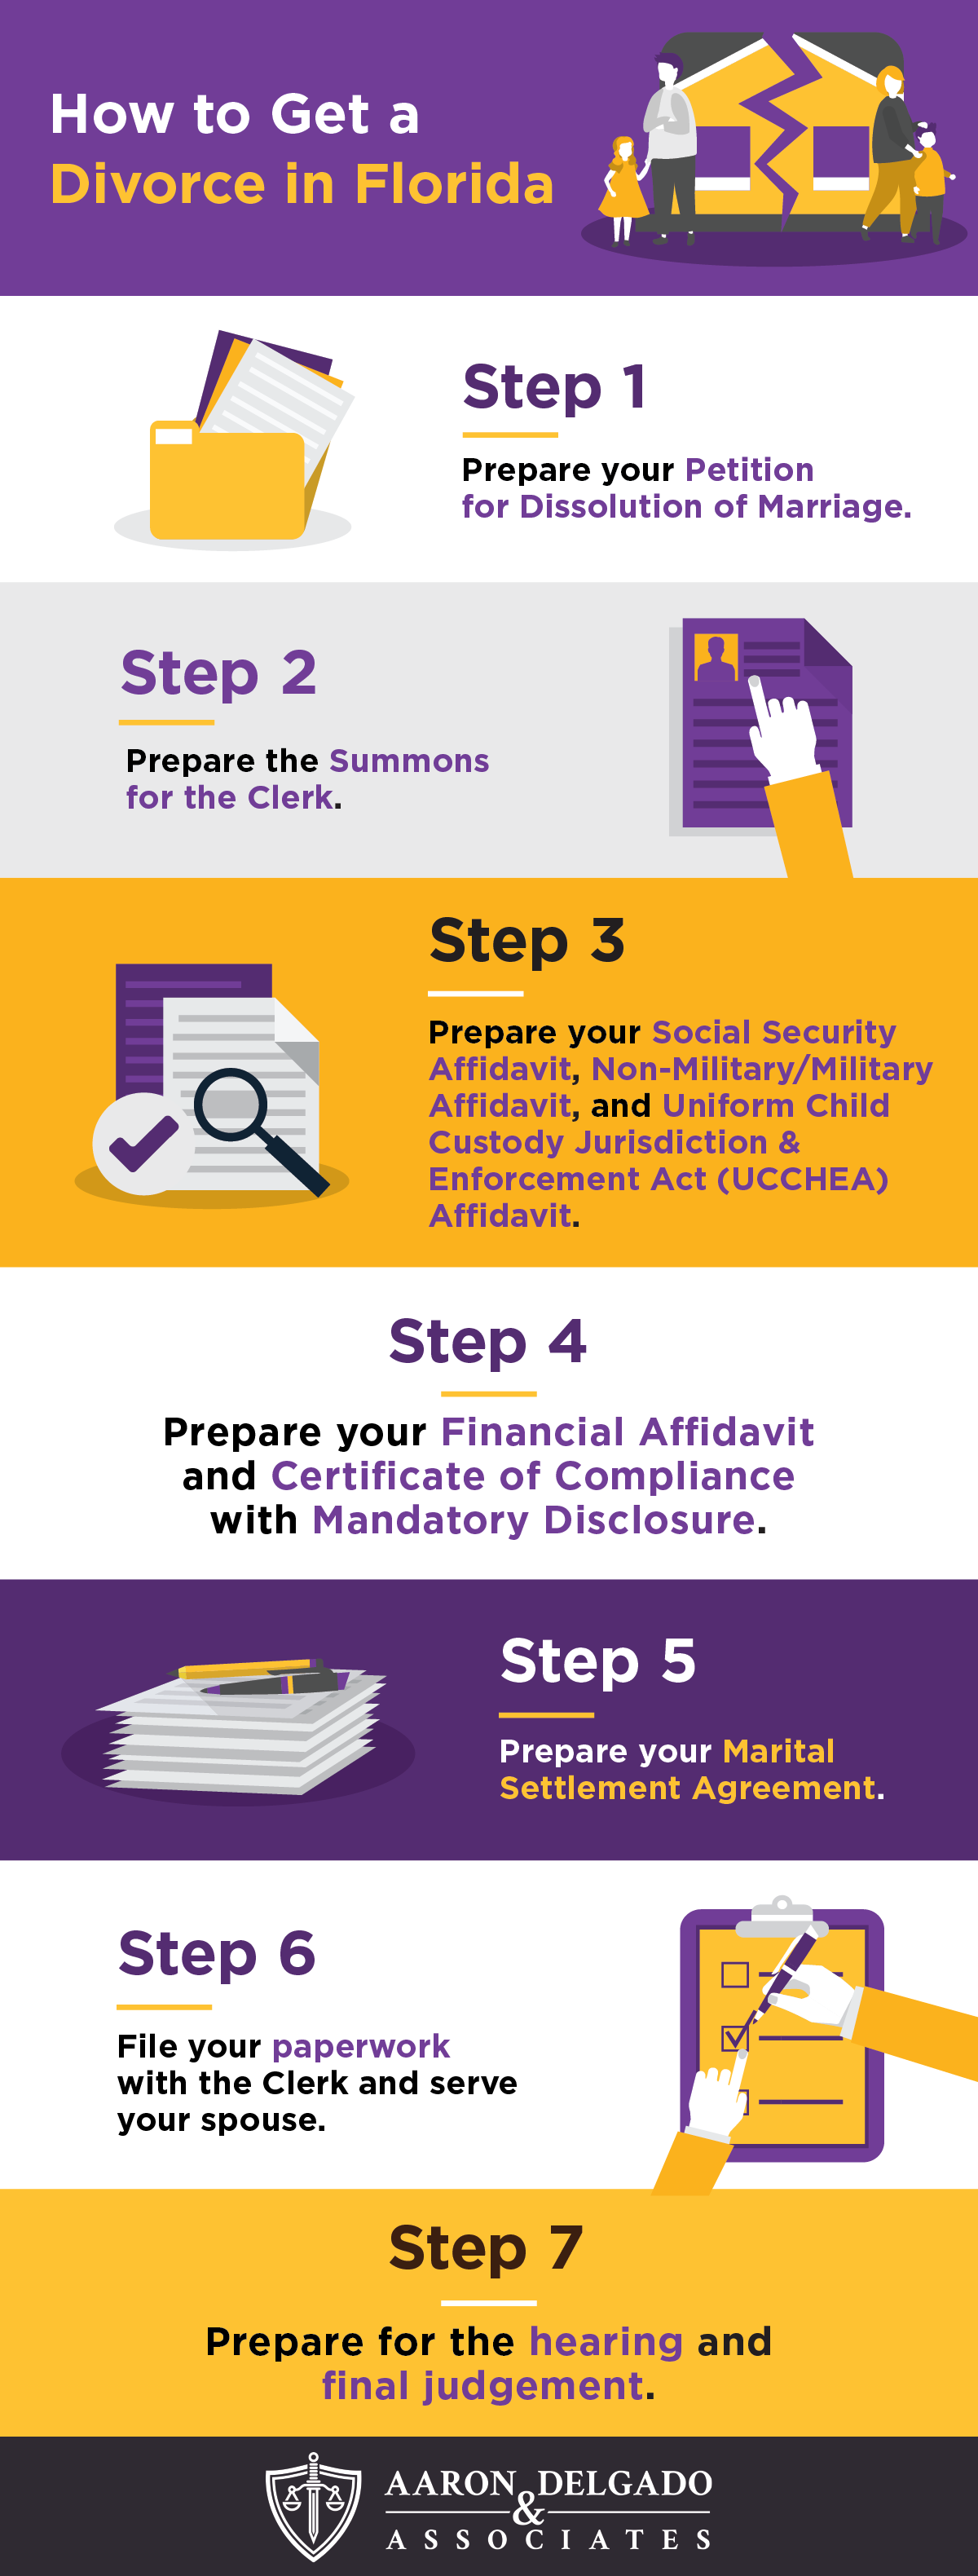 how to get a divorce in Florida infographic